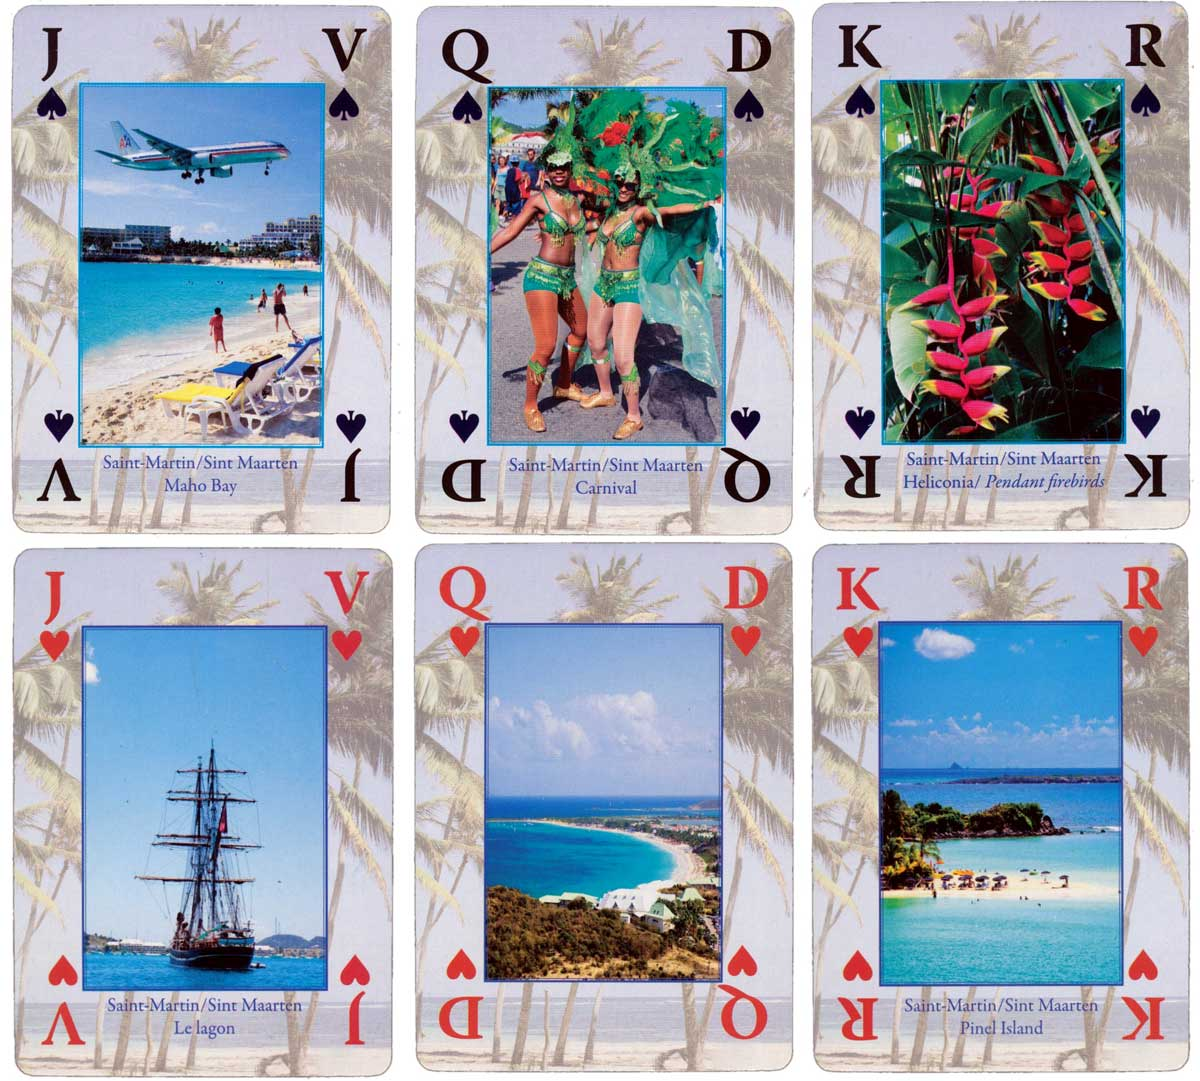 St-Martin Island Souvenir published by Editions Exbrayat